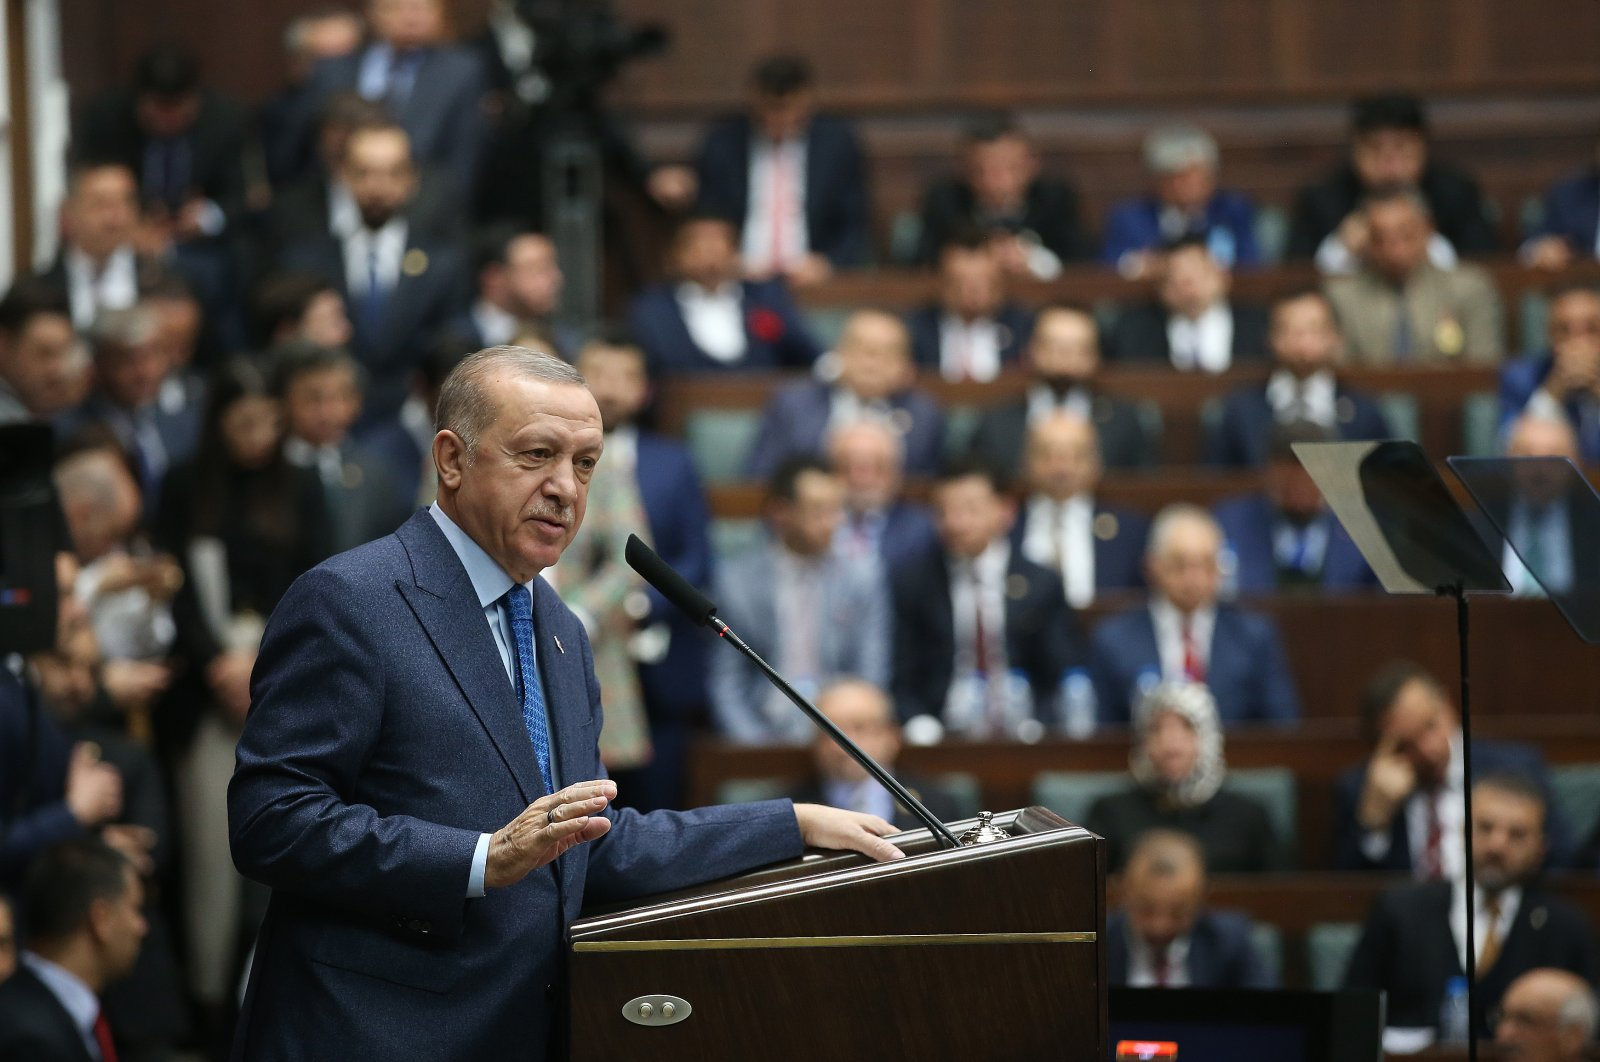 President Erdoğan speaks at the Justice and Development Party's parliamentary group meeting in Ankara on Wednesday, March 11, 2020. (AA Photo)